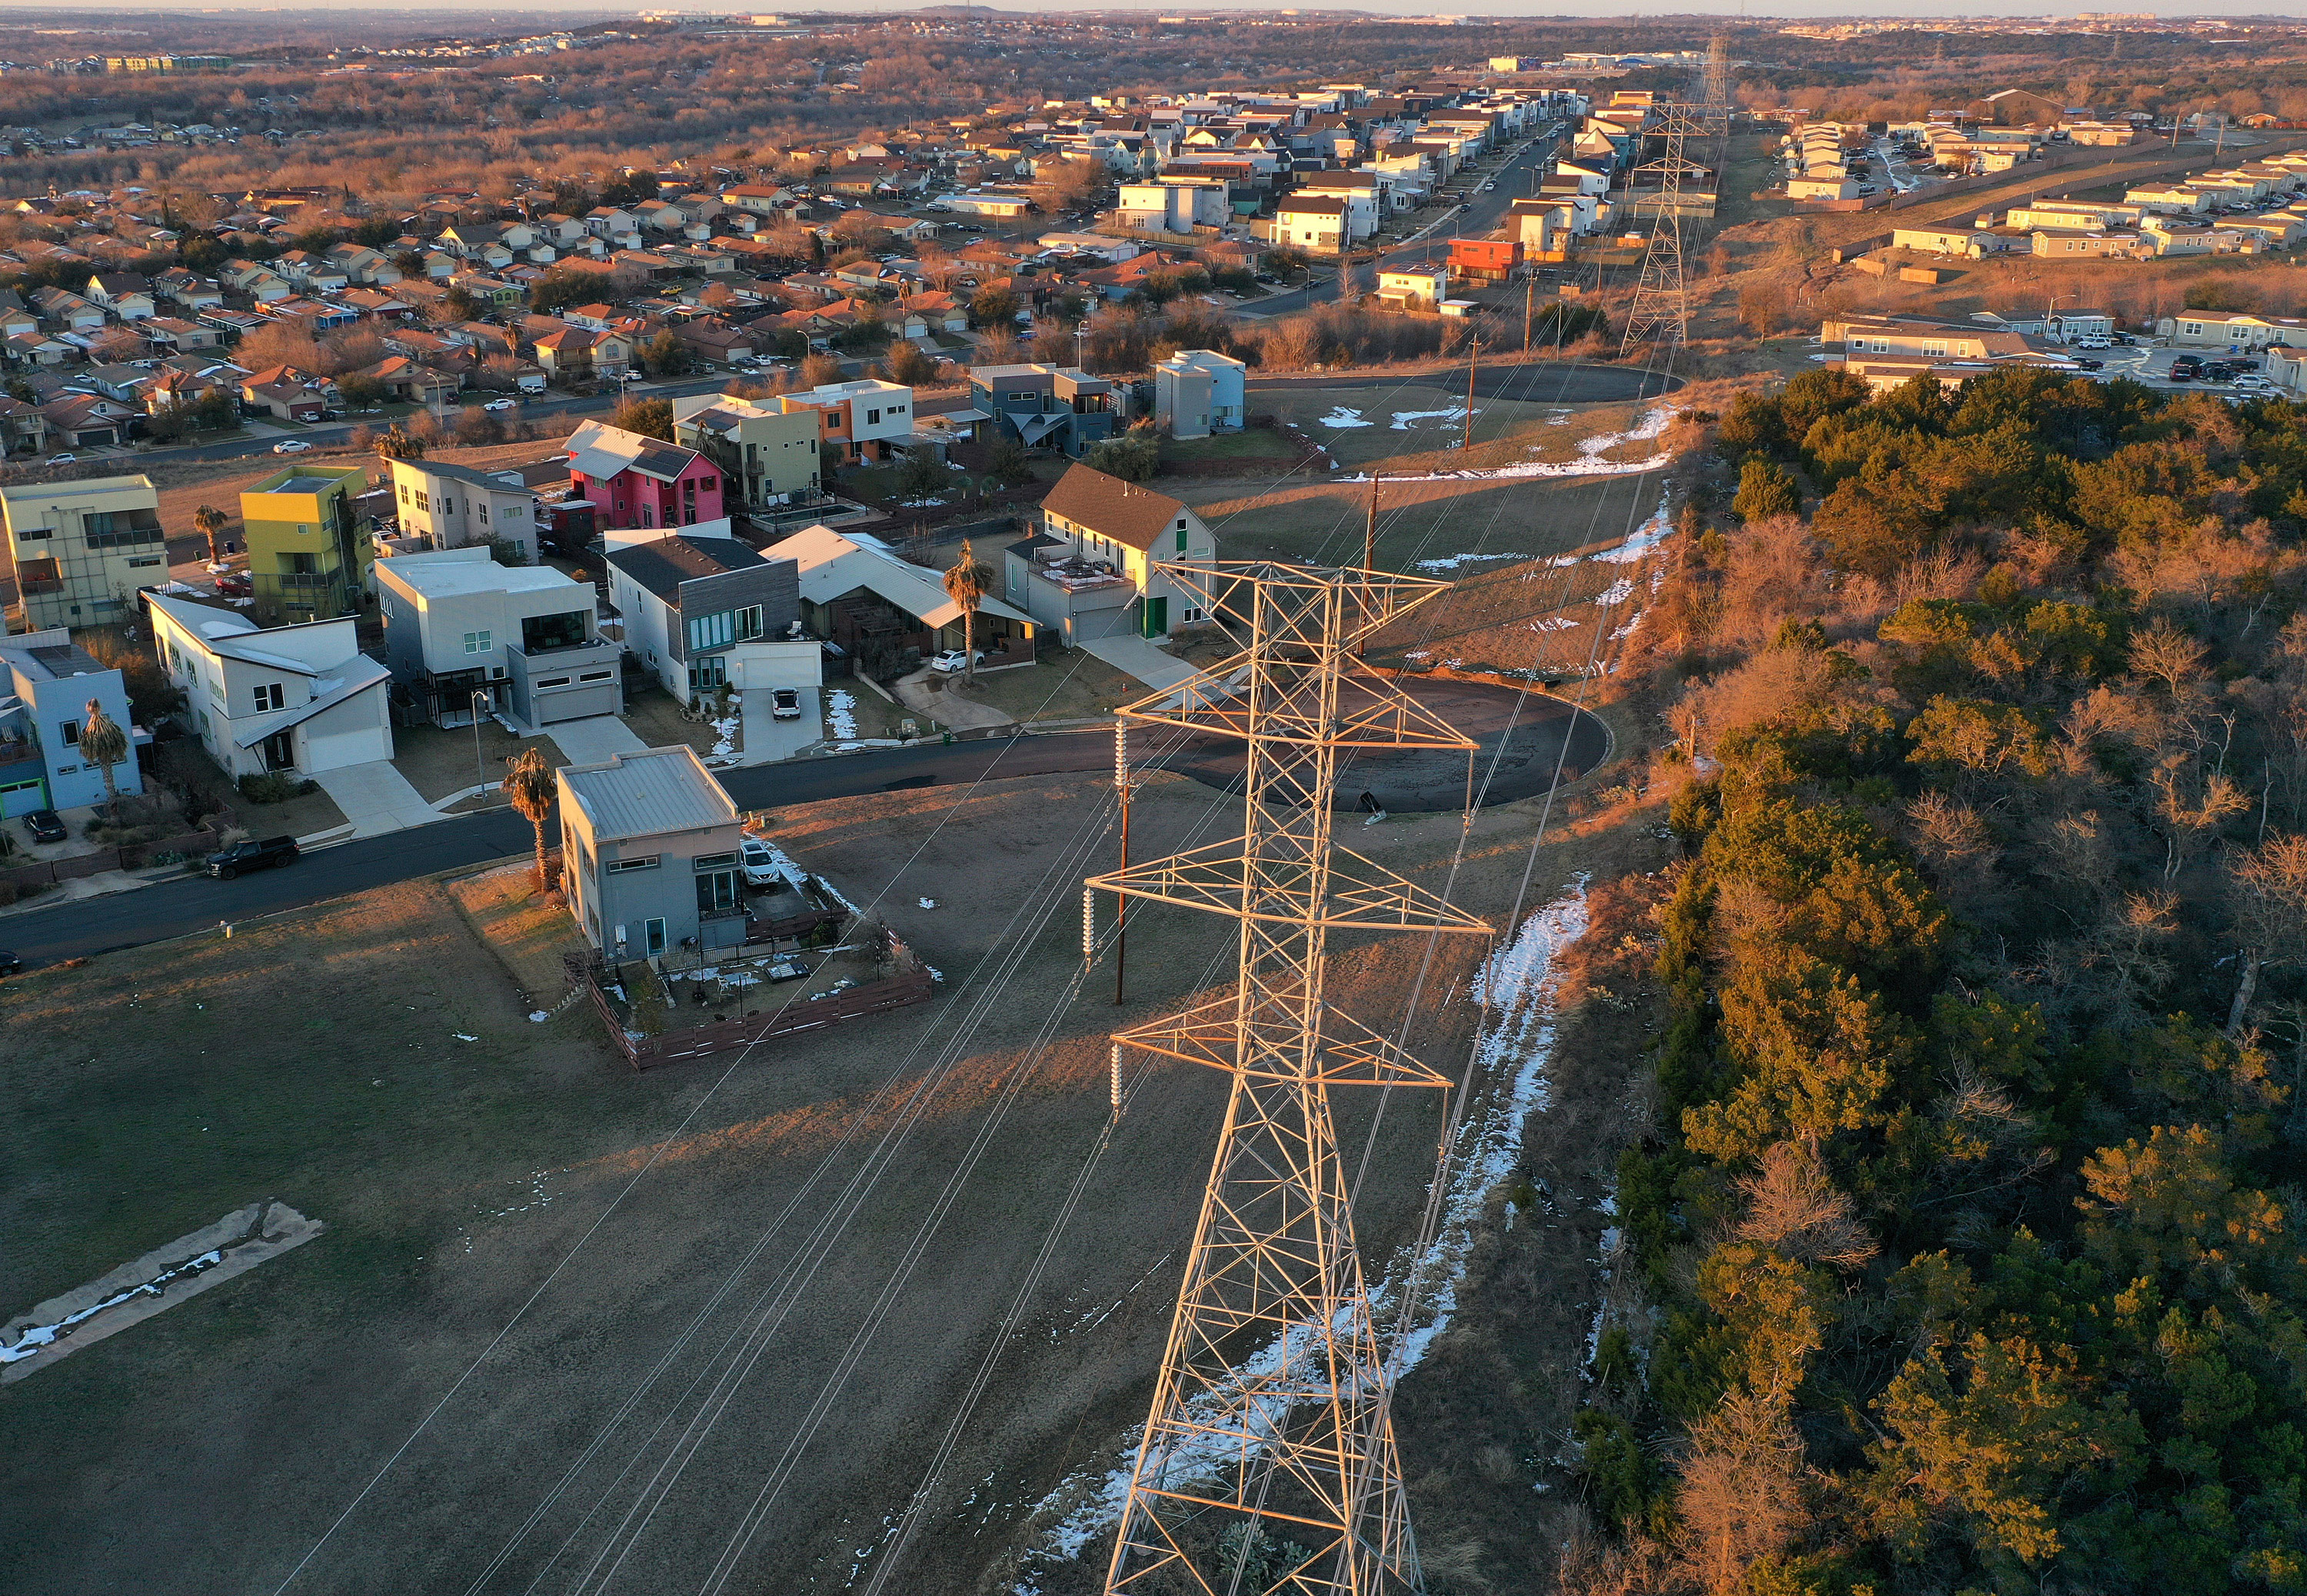 Texas officials are investigating outrageous energy bills in storm price surge